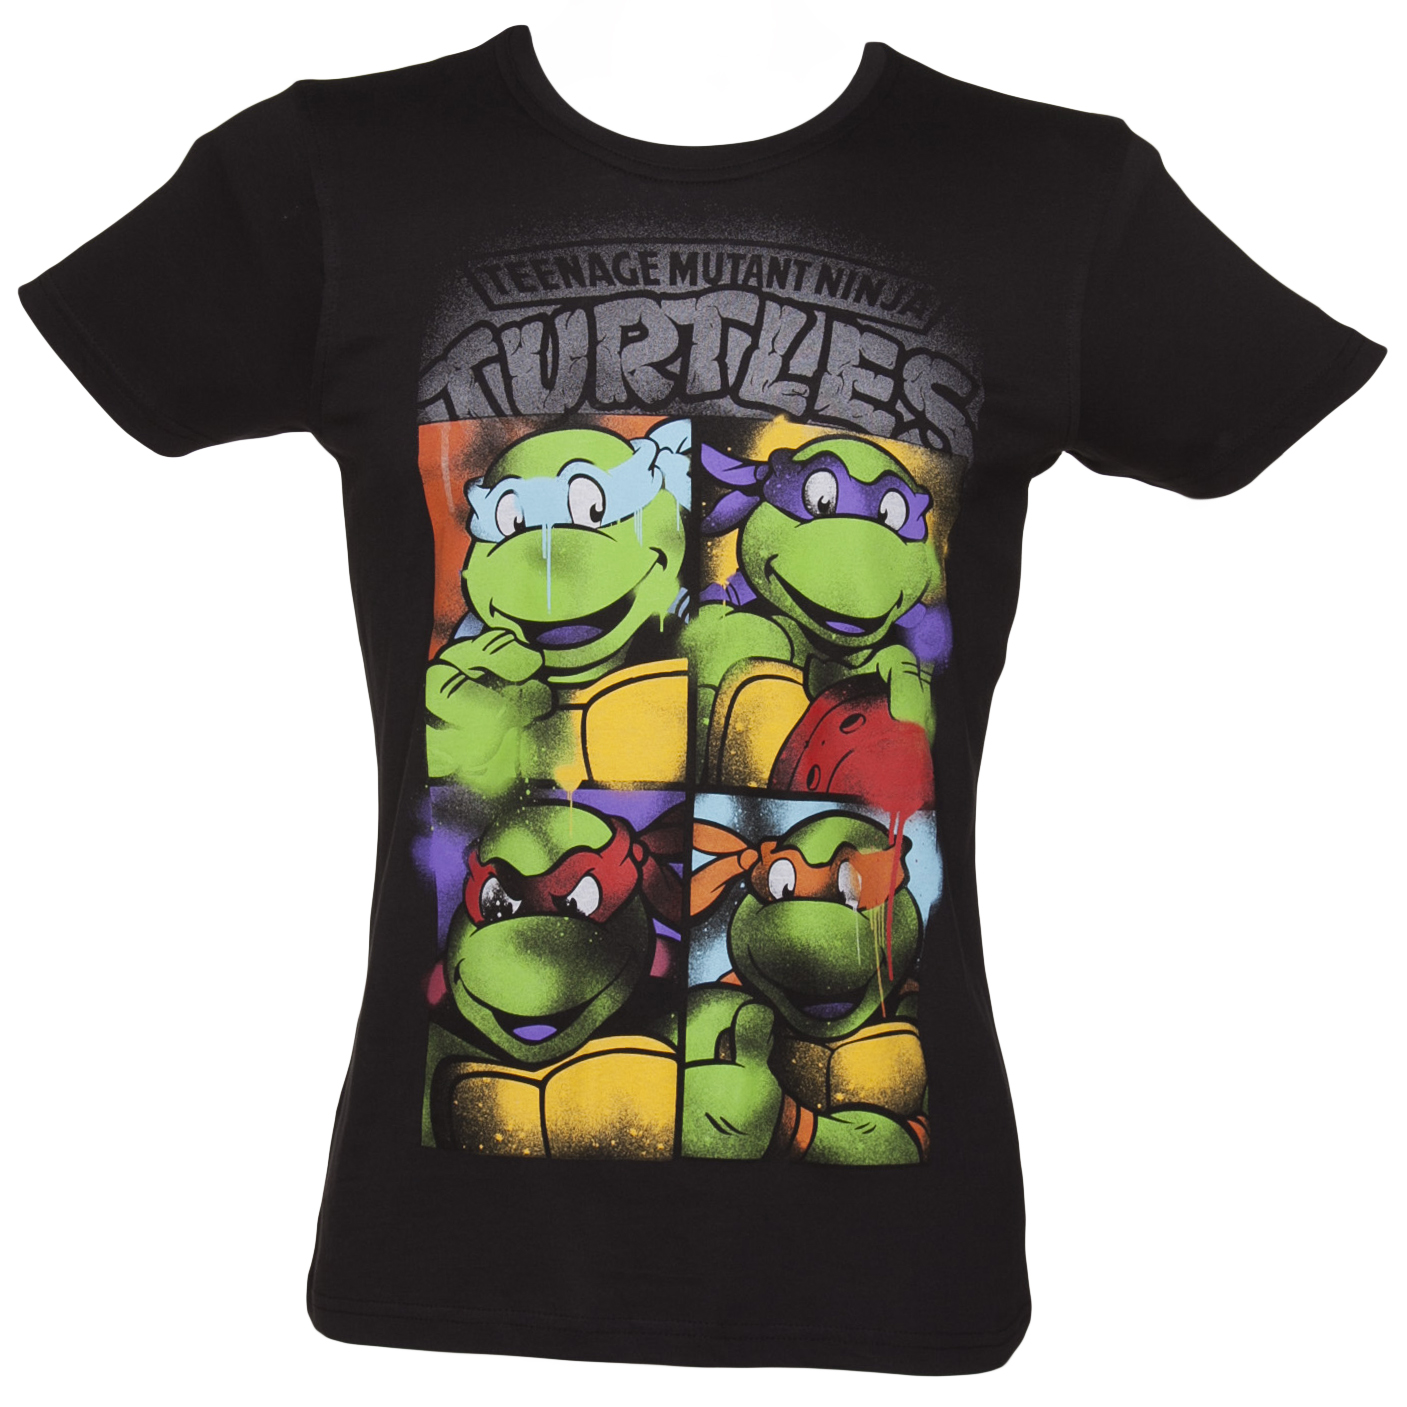 Black t shirt ebay - Official Men S Black Teenage Mutant Ninja Turtles Graffiti T Shirt Ebay